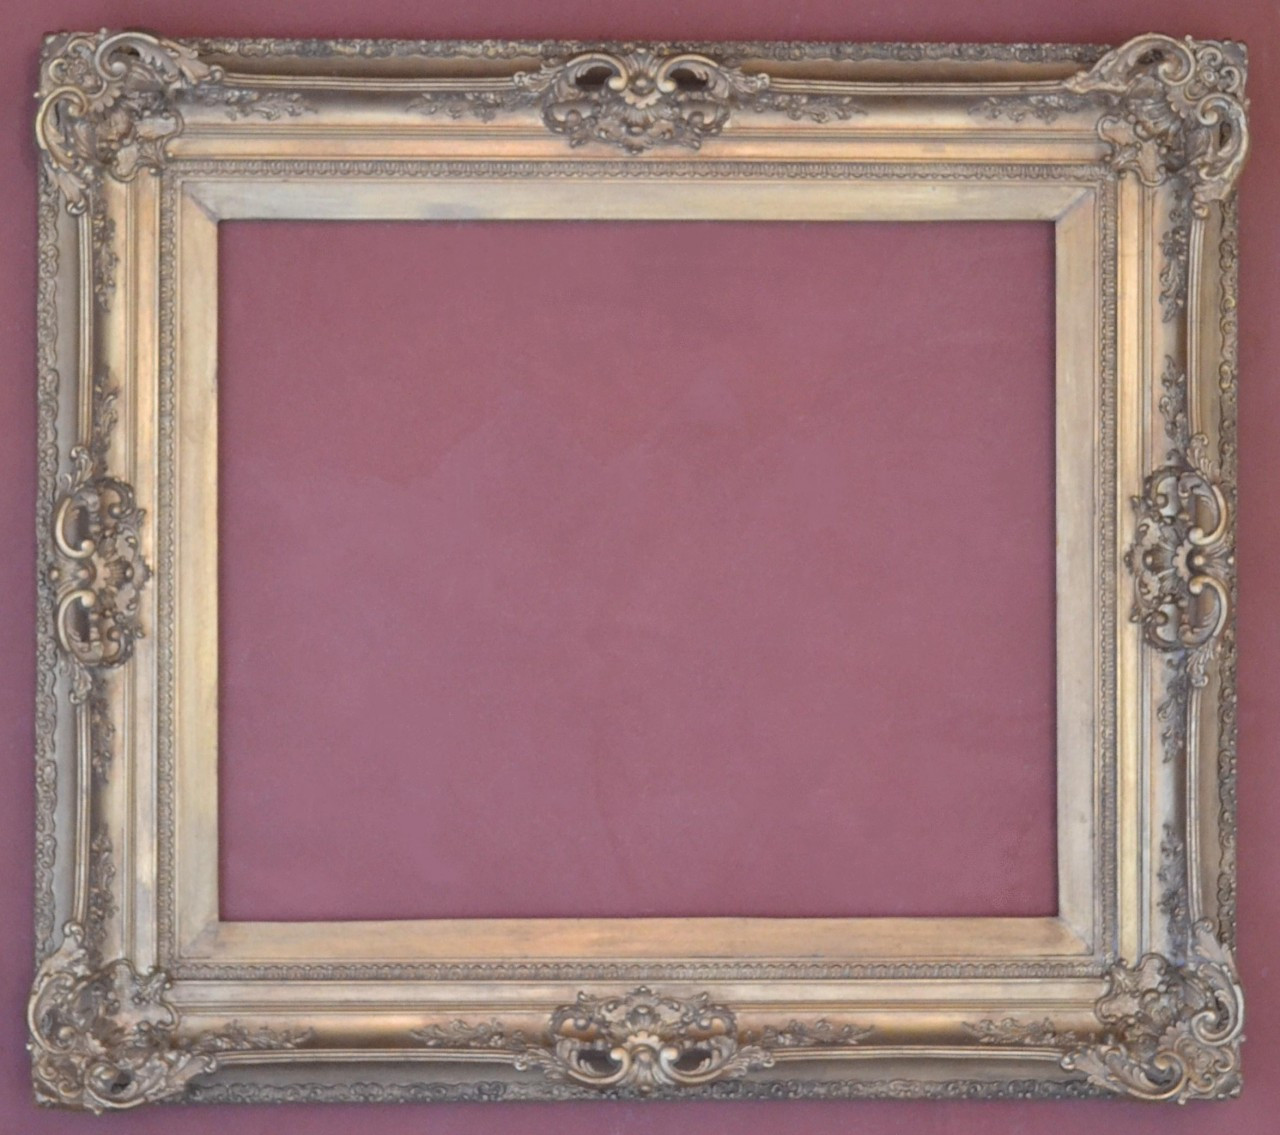 Antique frame - Art size: 25 X 30 inches